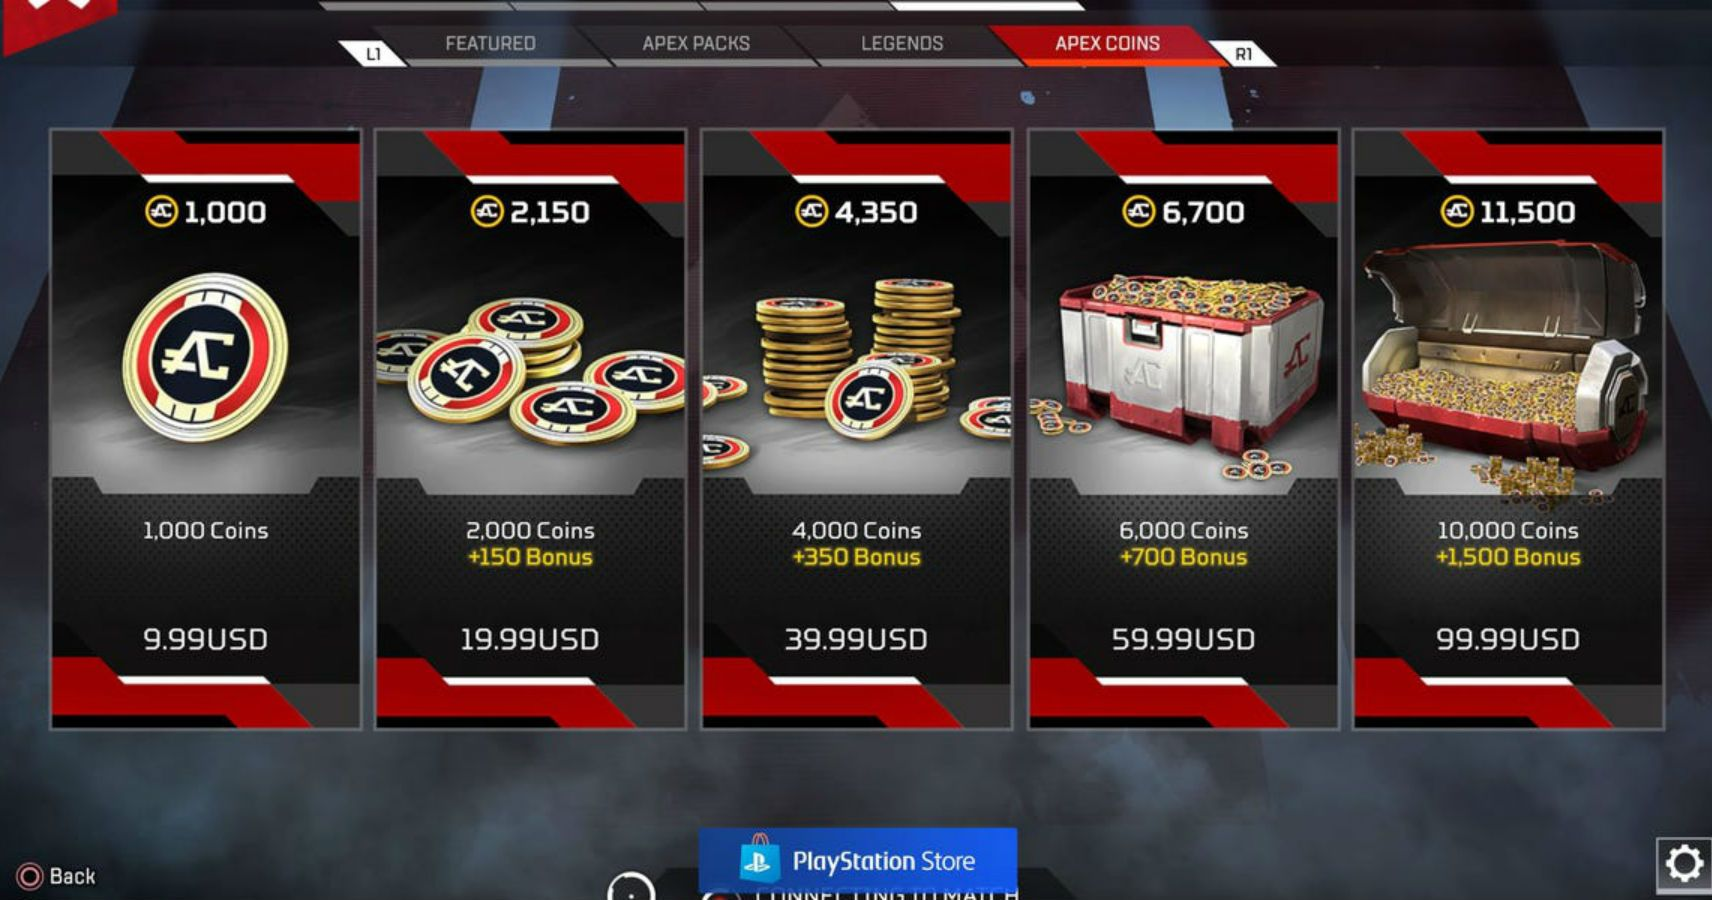 Canadian Class Action Lawsuit Targets EA Over In-Game Loot Boxes |  Game-Thought.com